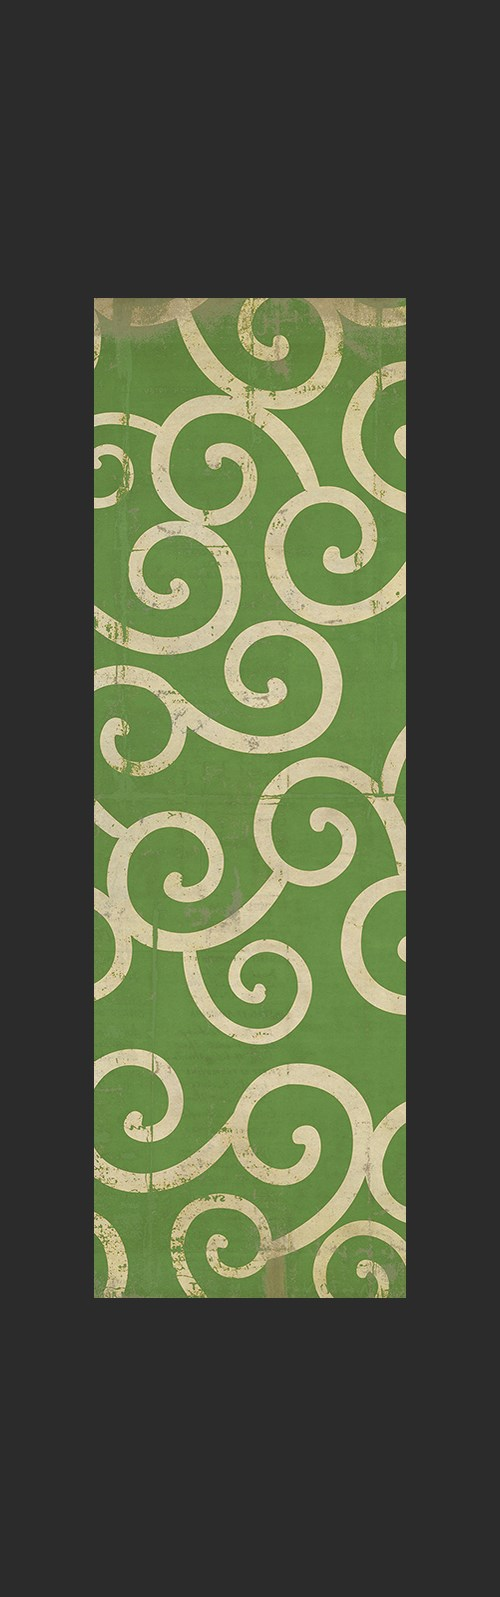 Pattern 04 The Sea of Green 36x115